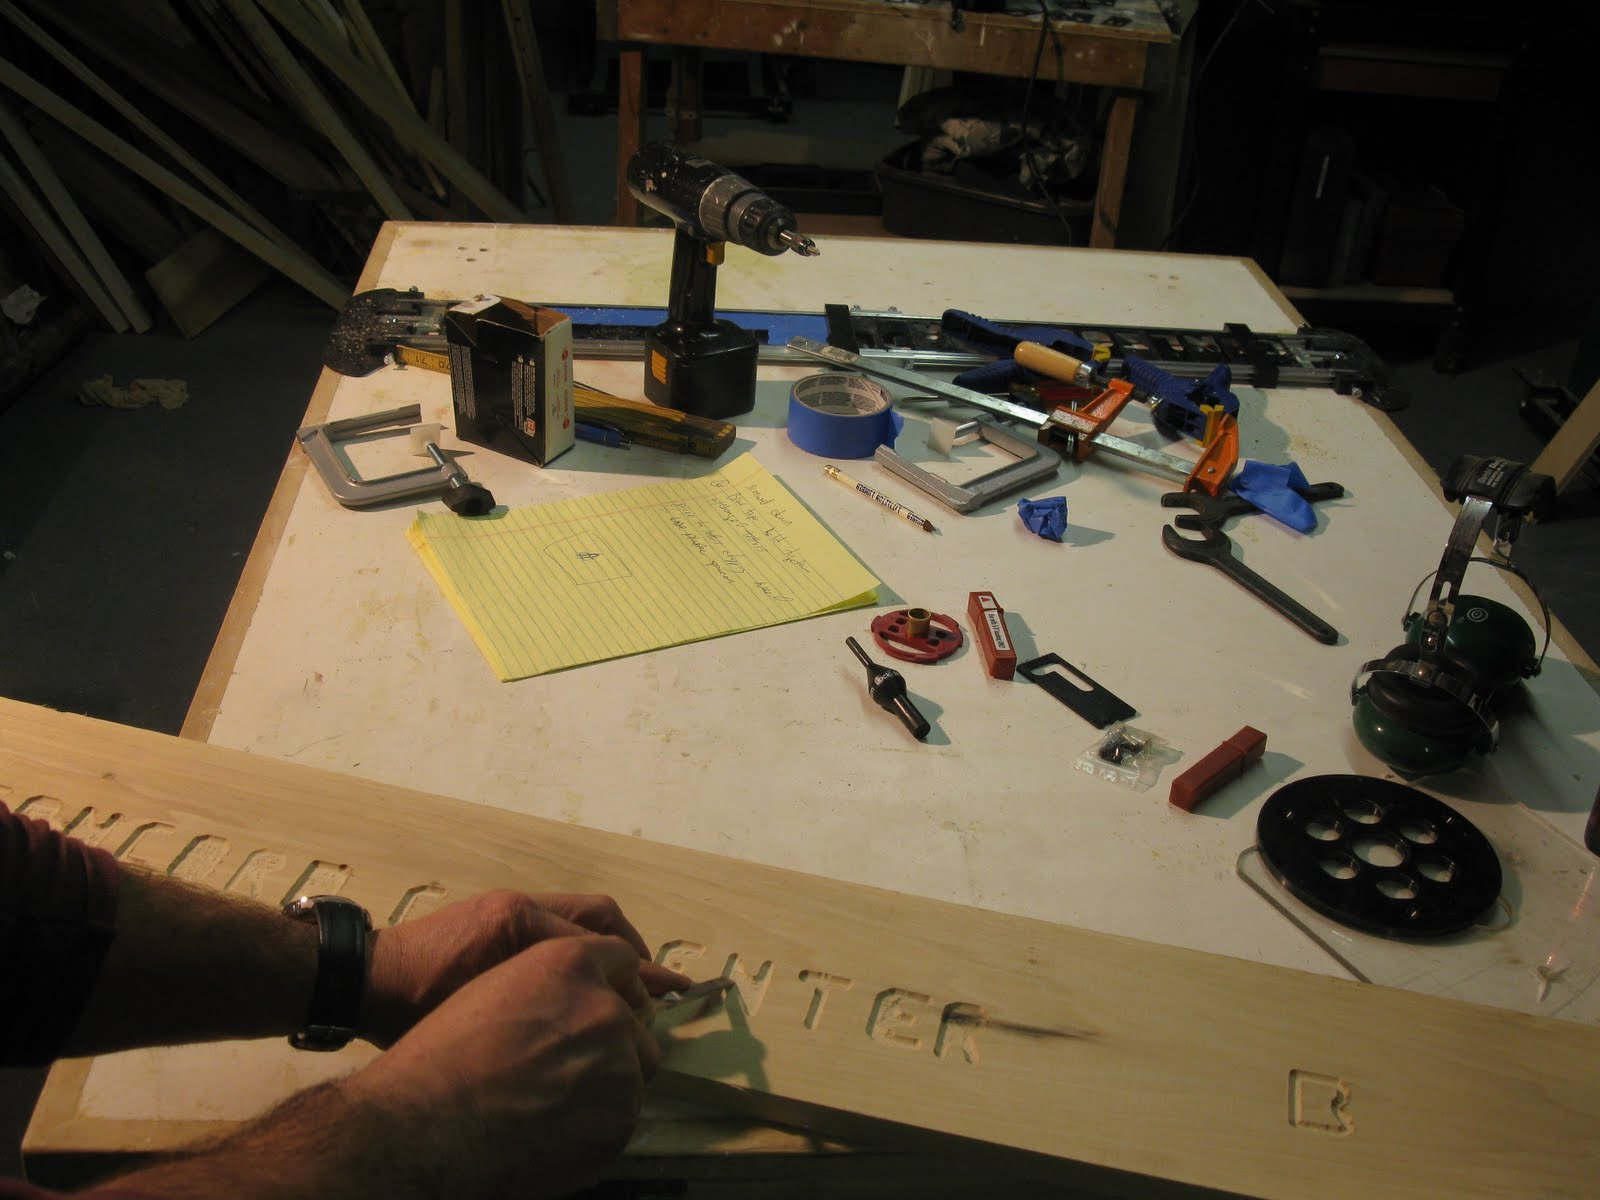 Milescraft sign making jig sealing is important because once its dry belt sanding the sign face is recommended so that the letters stand spiritdancerdesigns Choice Image